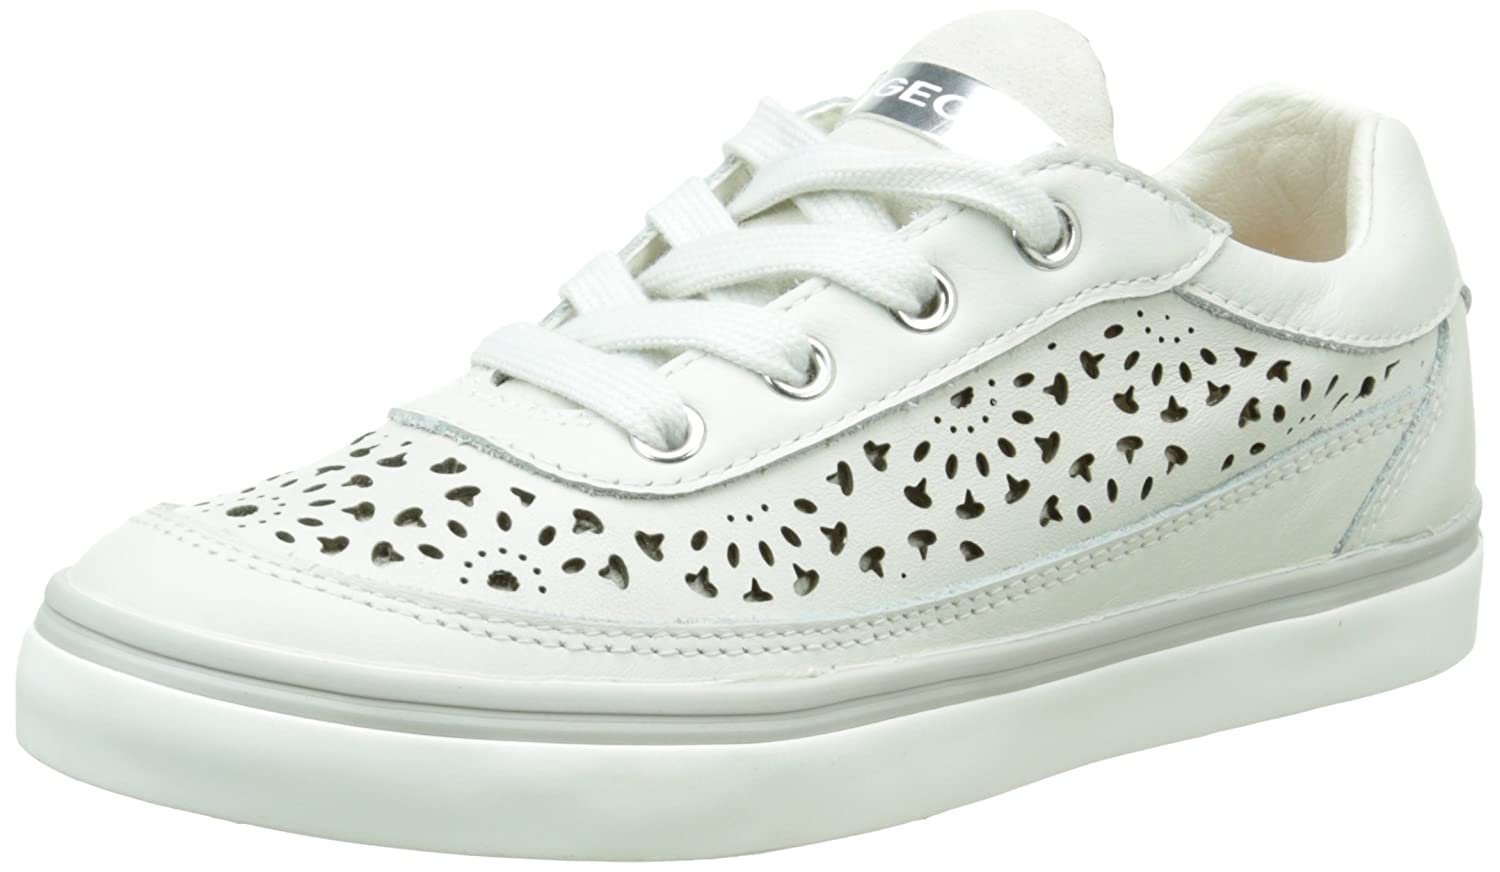 a73c915359bf Geox Girls' Ciak H Low-Top Sneakers, Blanc (C1002), 11 UK Child: Amazon.co. uk: Shoes & Bags